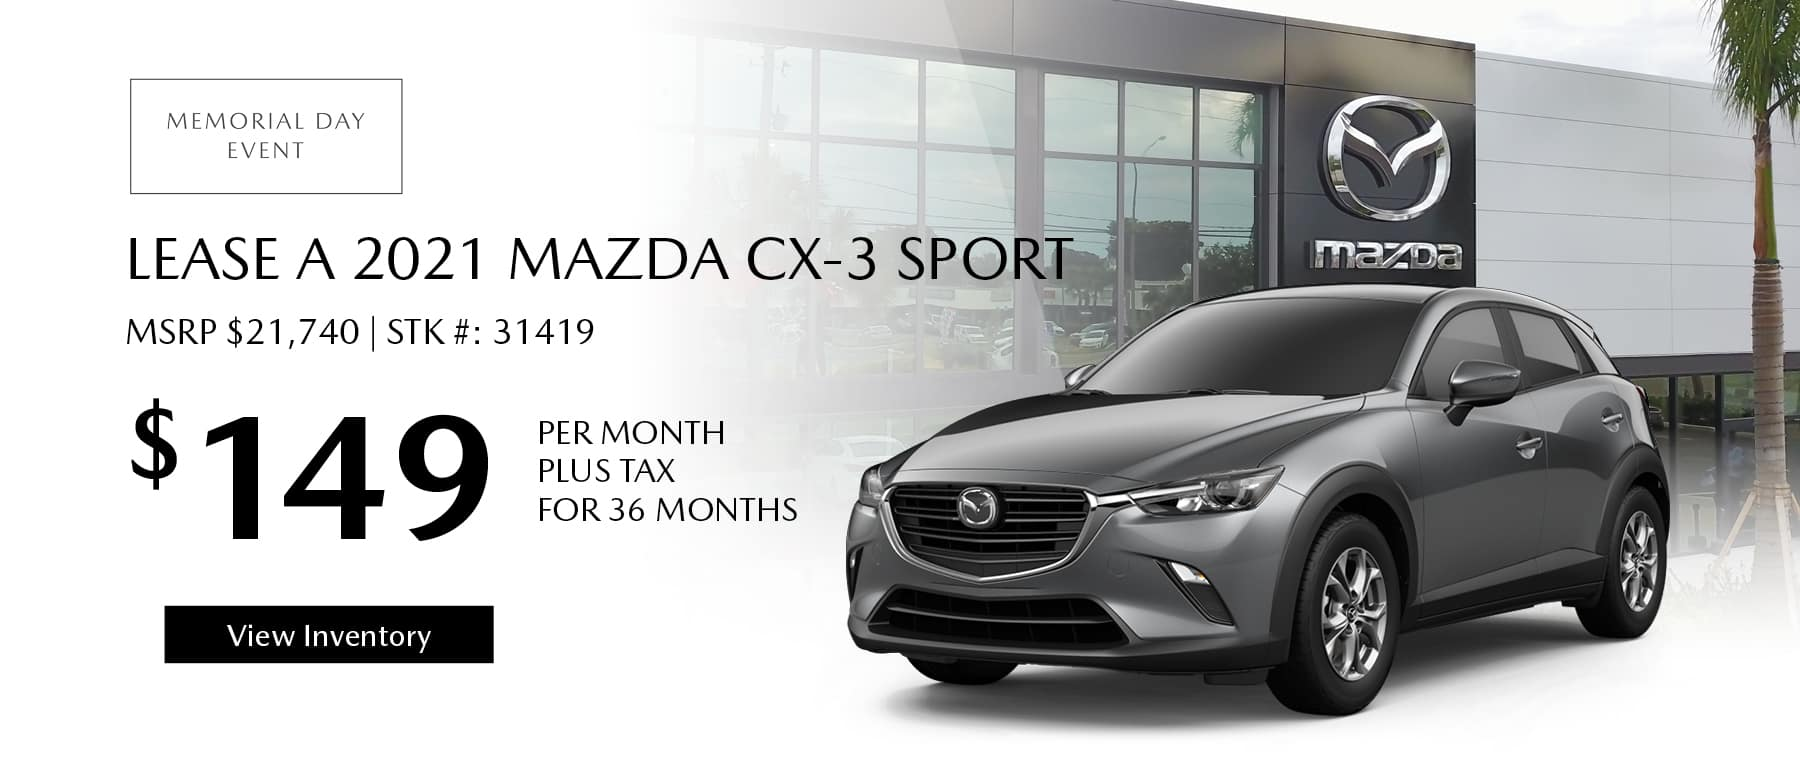 Lease the 2021 Mazda CX-3 for $149 per month, plus tax for 36 months. Click or tap here to view our inventory.